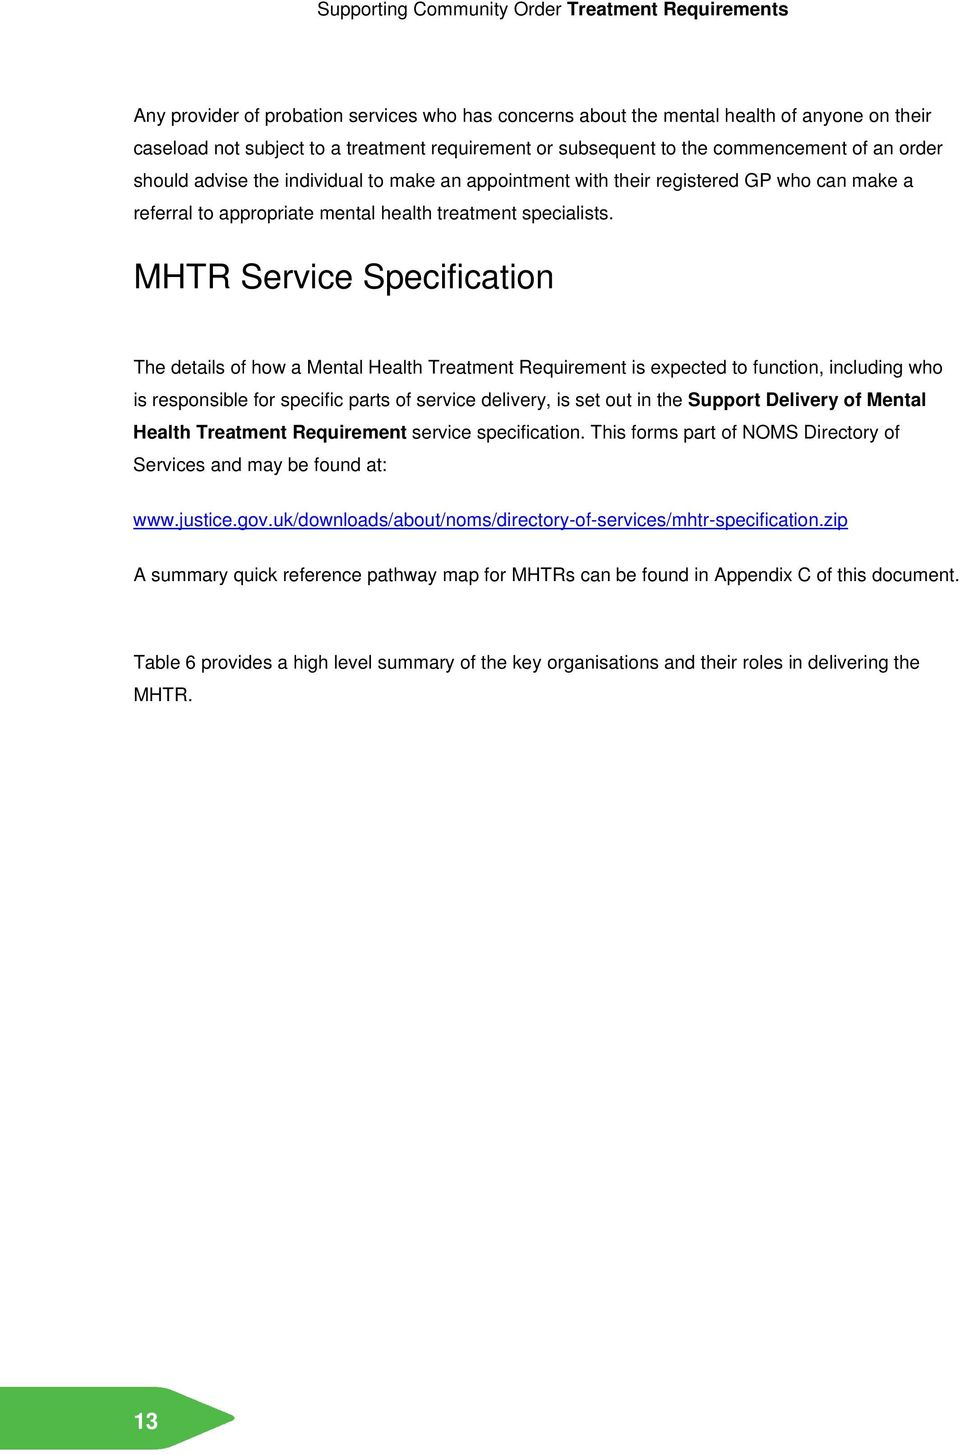 MHTR Service Specification The details of how a Mental Health Treatment Requirement is expected to function, including who is responsible for specific parts of service delivery, is set out in the